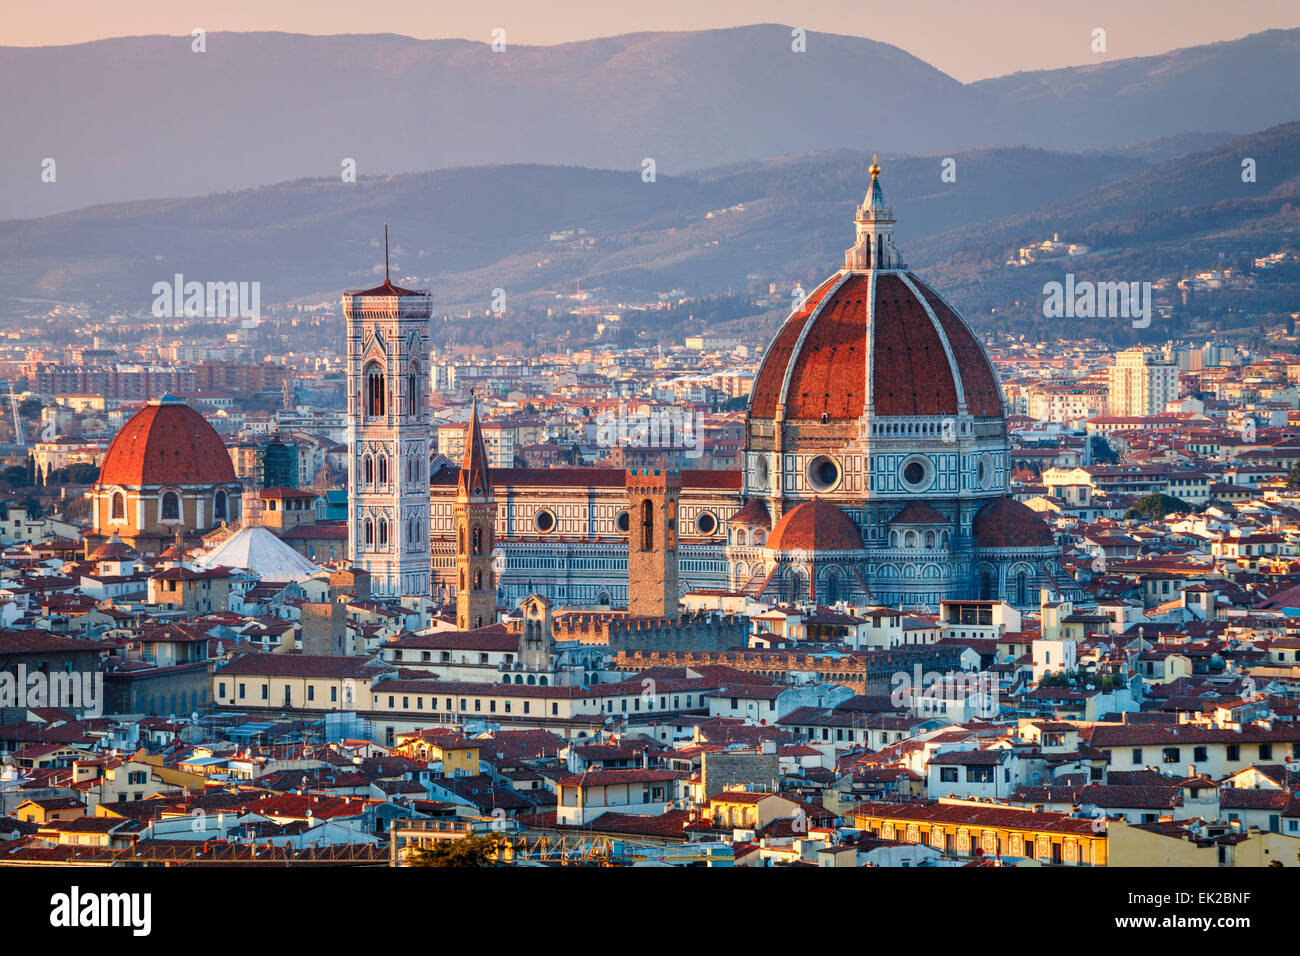 The Duomo of Florence at Sunset, Tuscany, Italy. - Stock Image